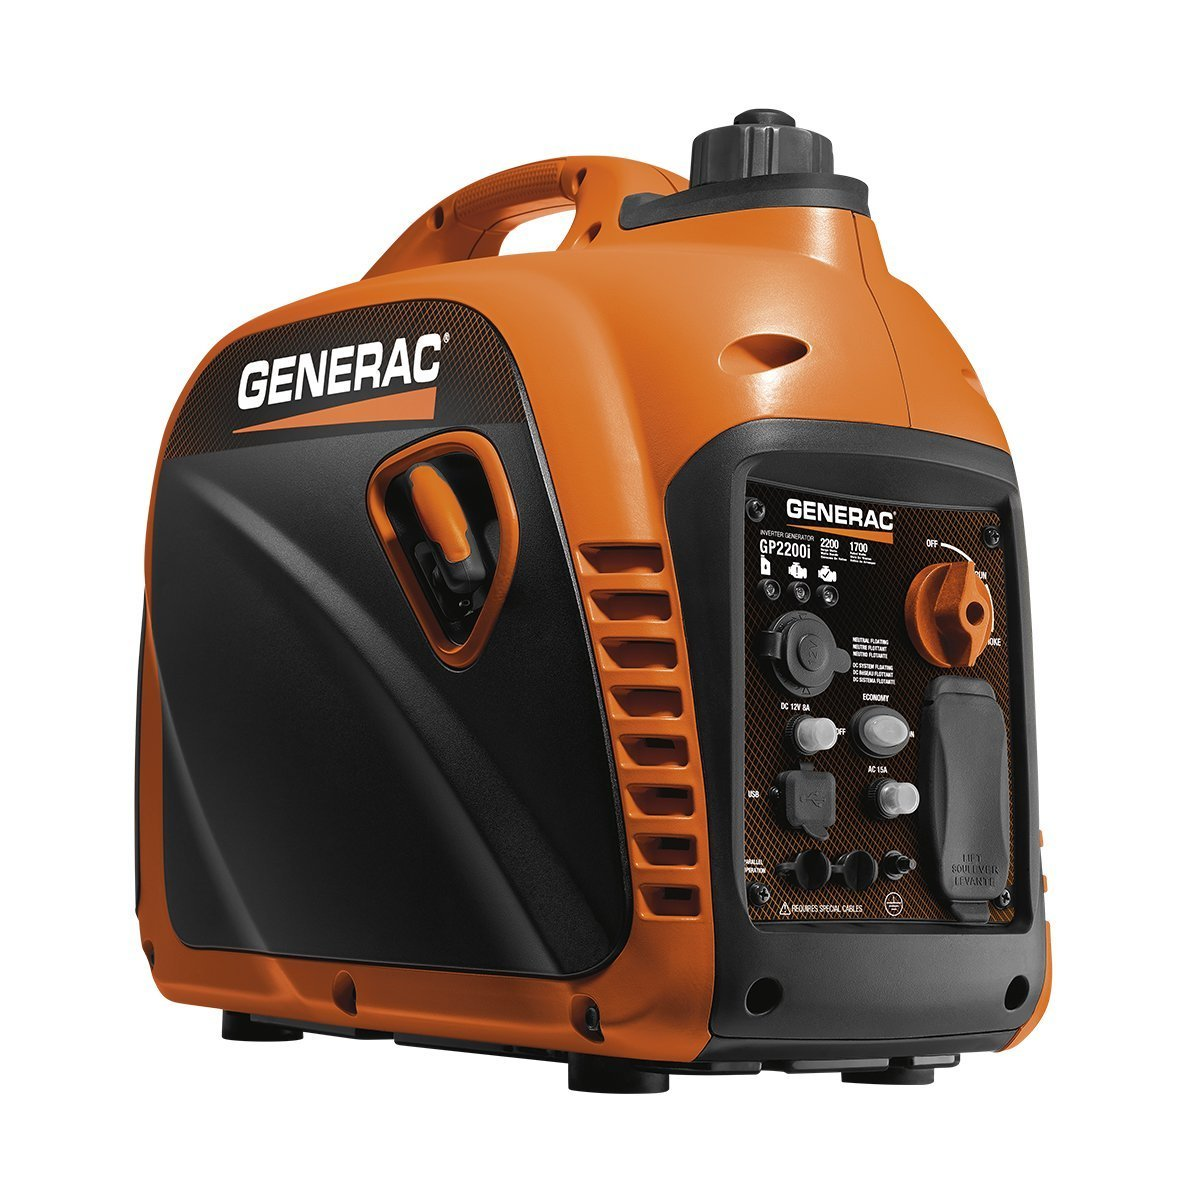 Generac 7117 GP2200i 2200 Watt Portable